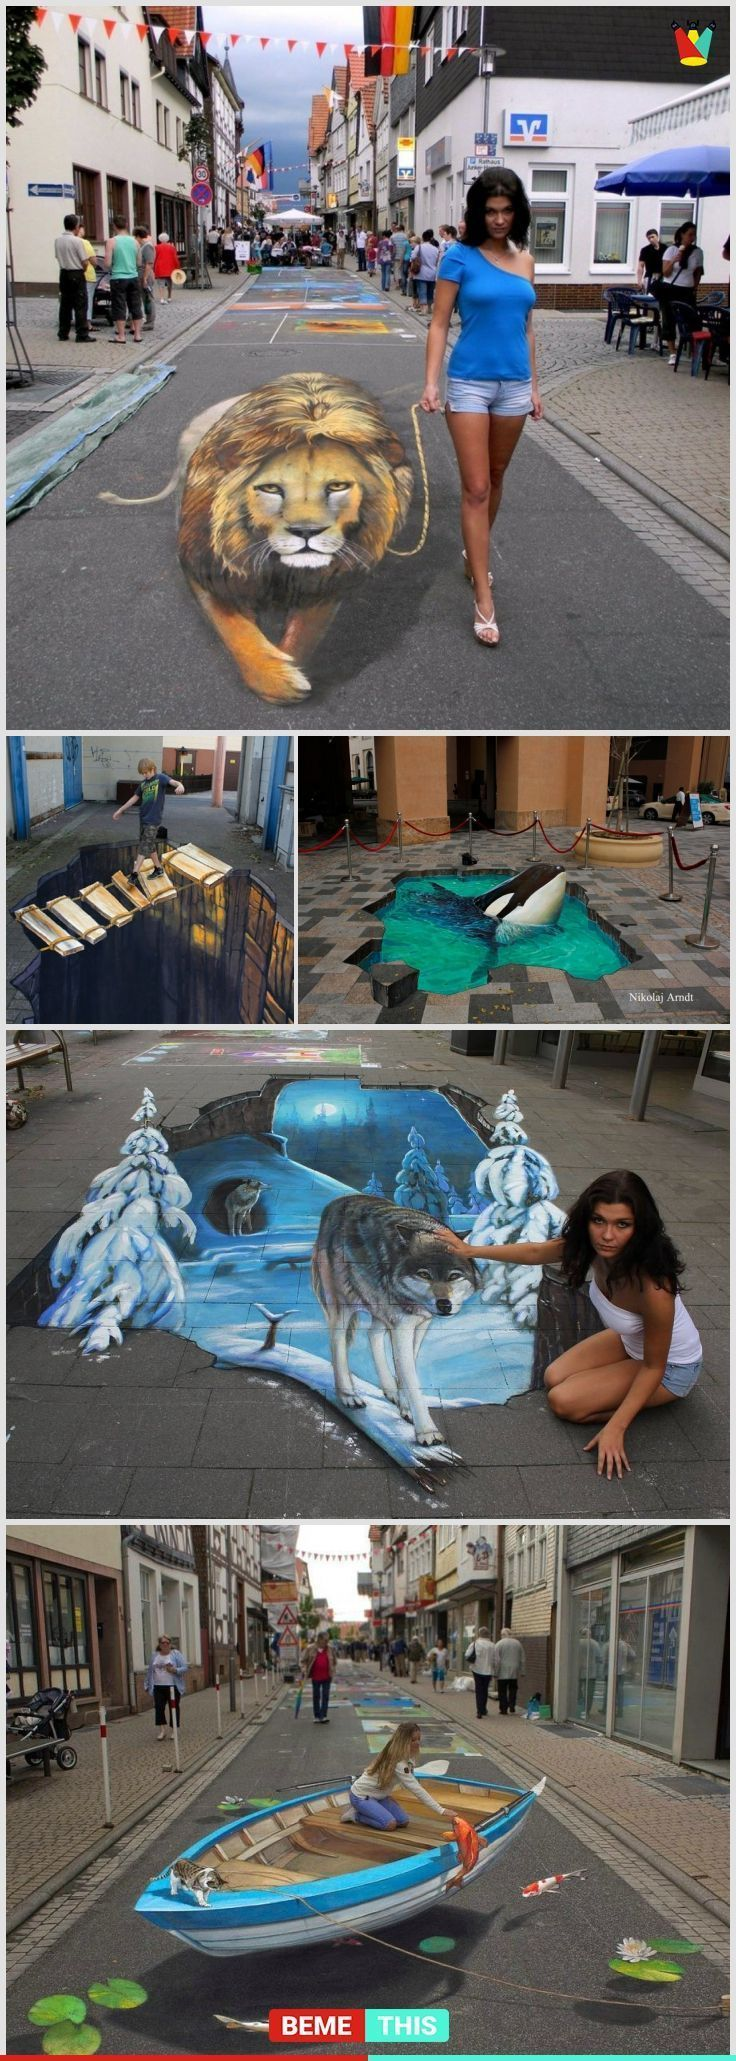 This amazing artist creates incredibly realistic looking 3D artwork – bemethis